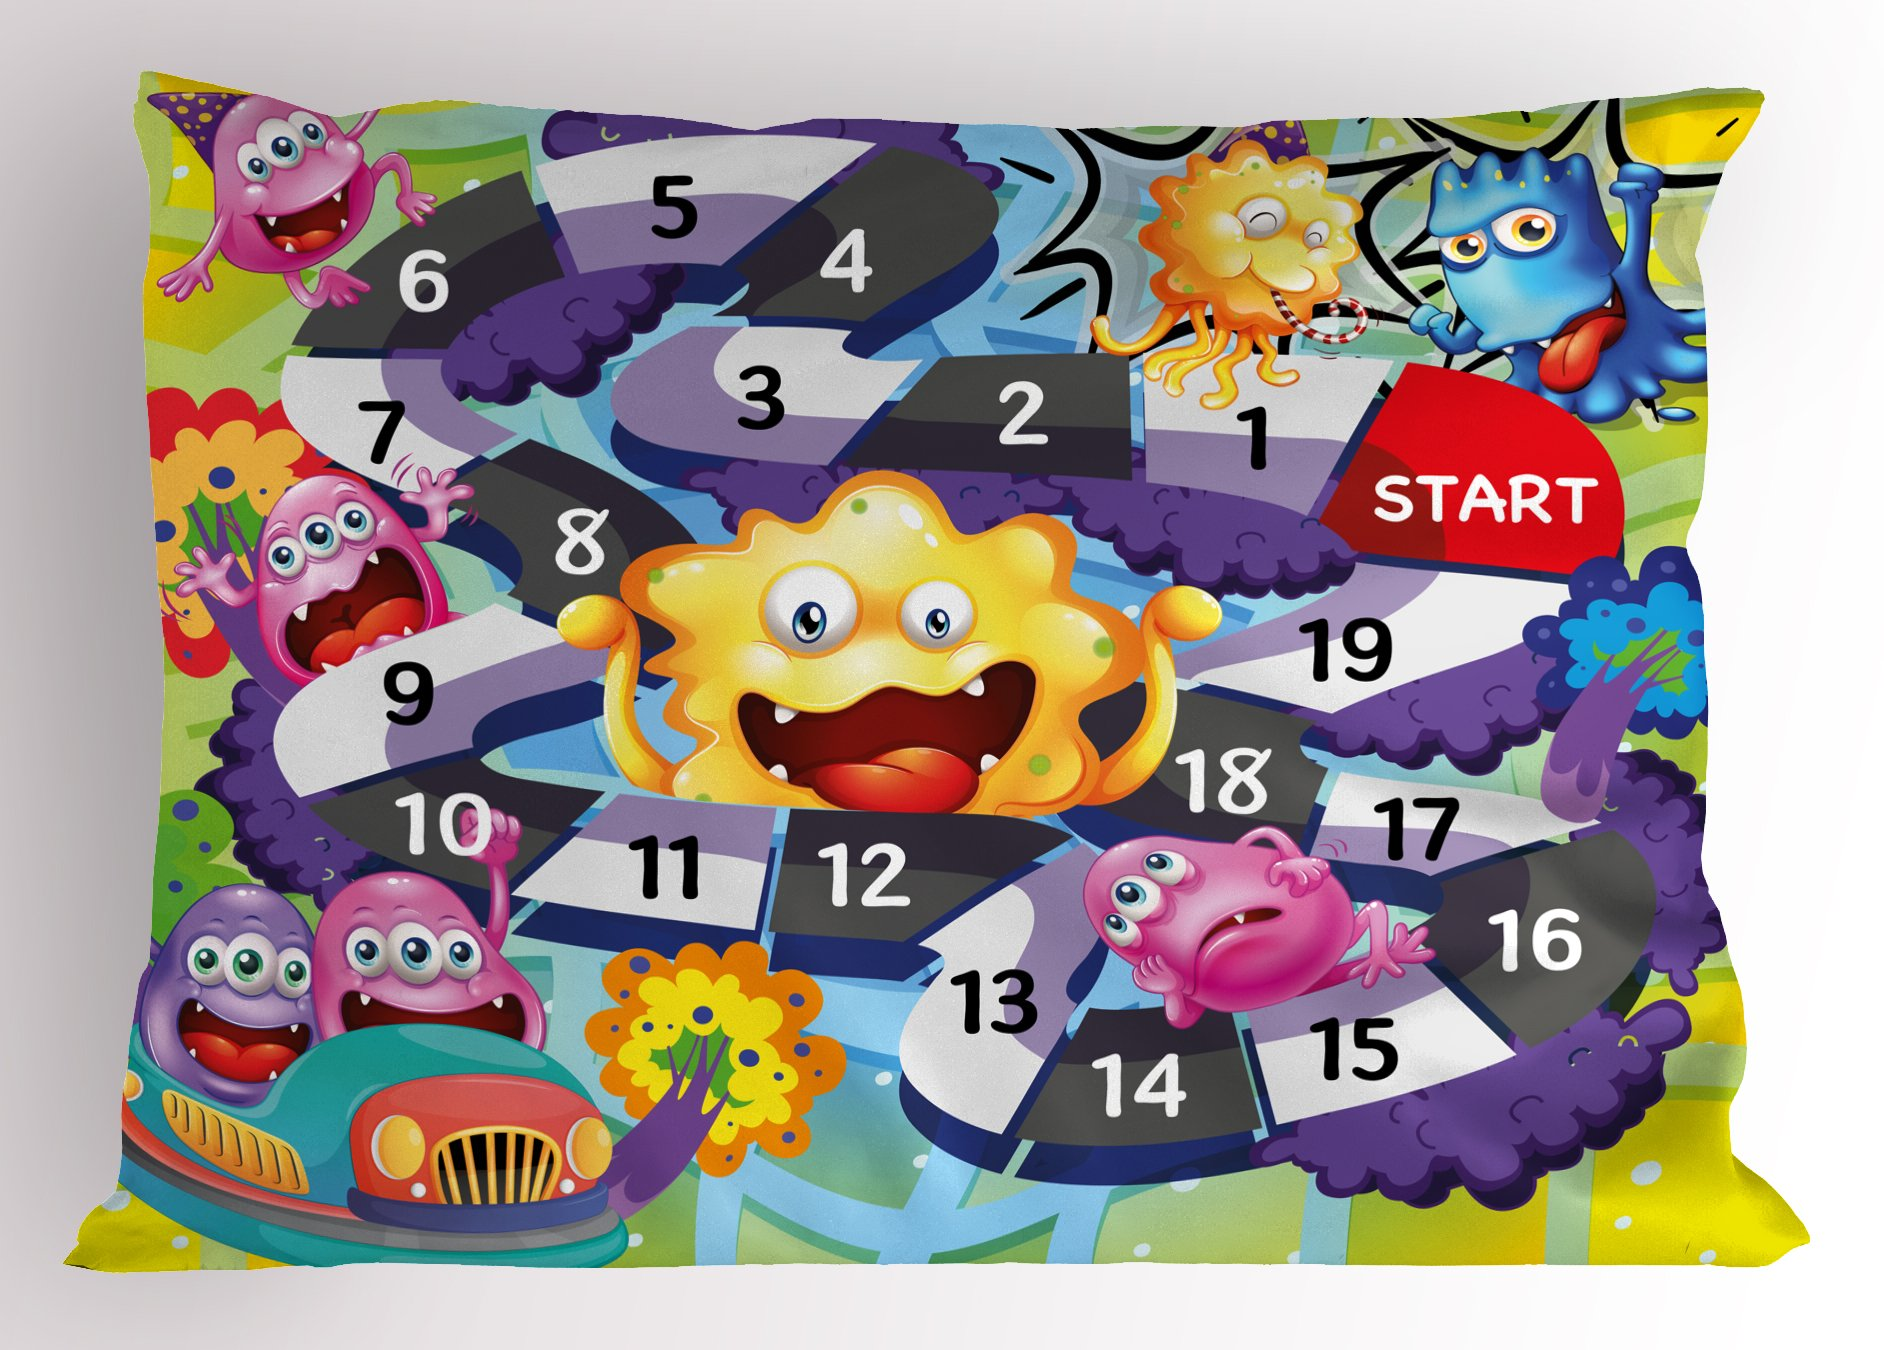 Lunarable Board Game Pillow Sham, Silly Monsters Creatures Finish Route Numbers Funny Expressions Cheering Aliens, Decorative Standard Size Printed Pillowcase, 26 X 20 inches, Multicolor